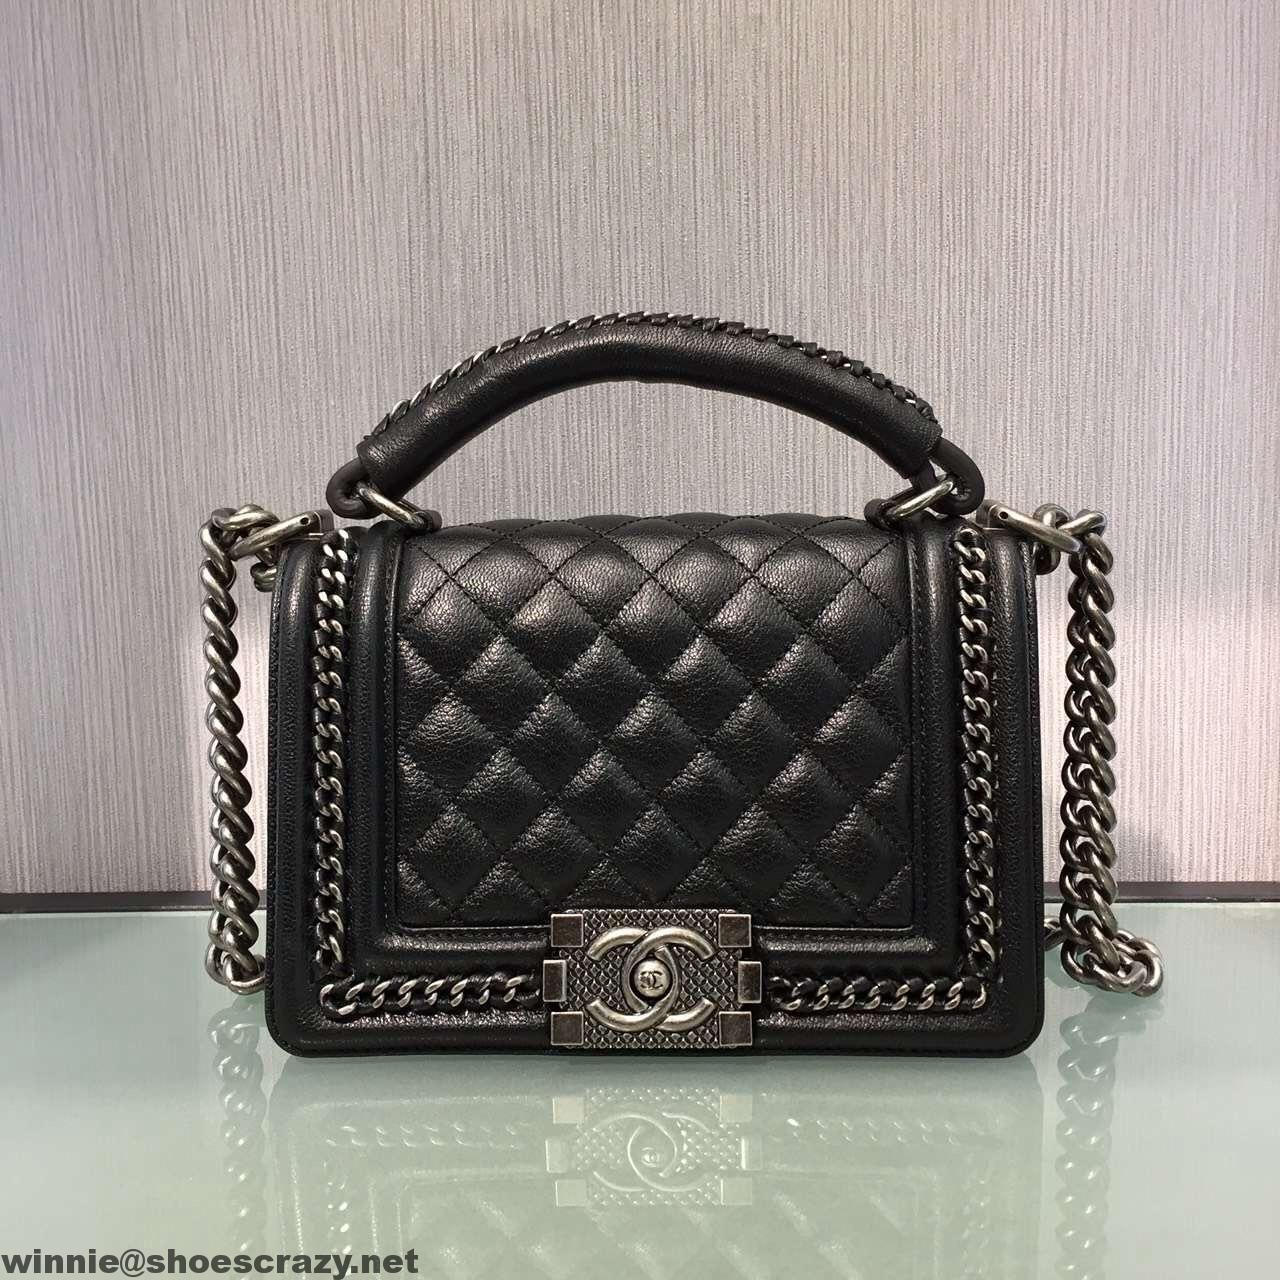 3f0170c12eff Chanel Small Boy Chanel Chain Handle Flap Bag